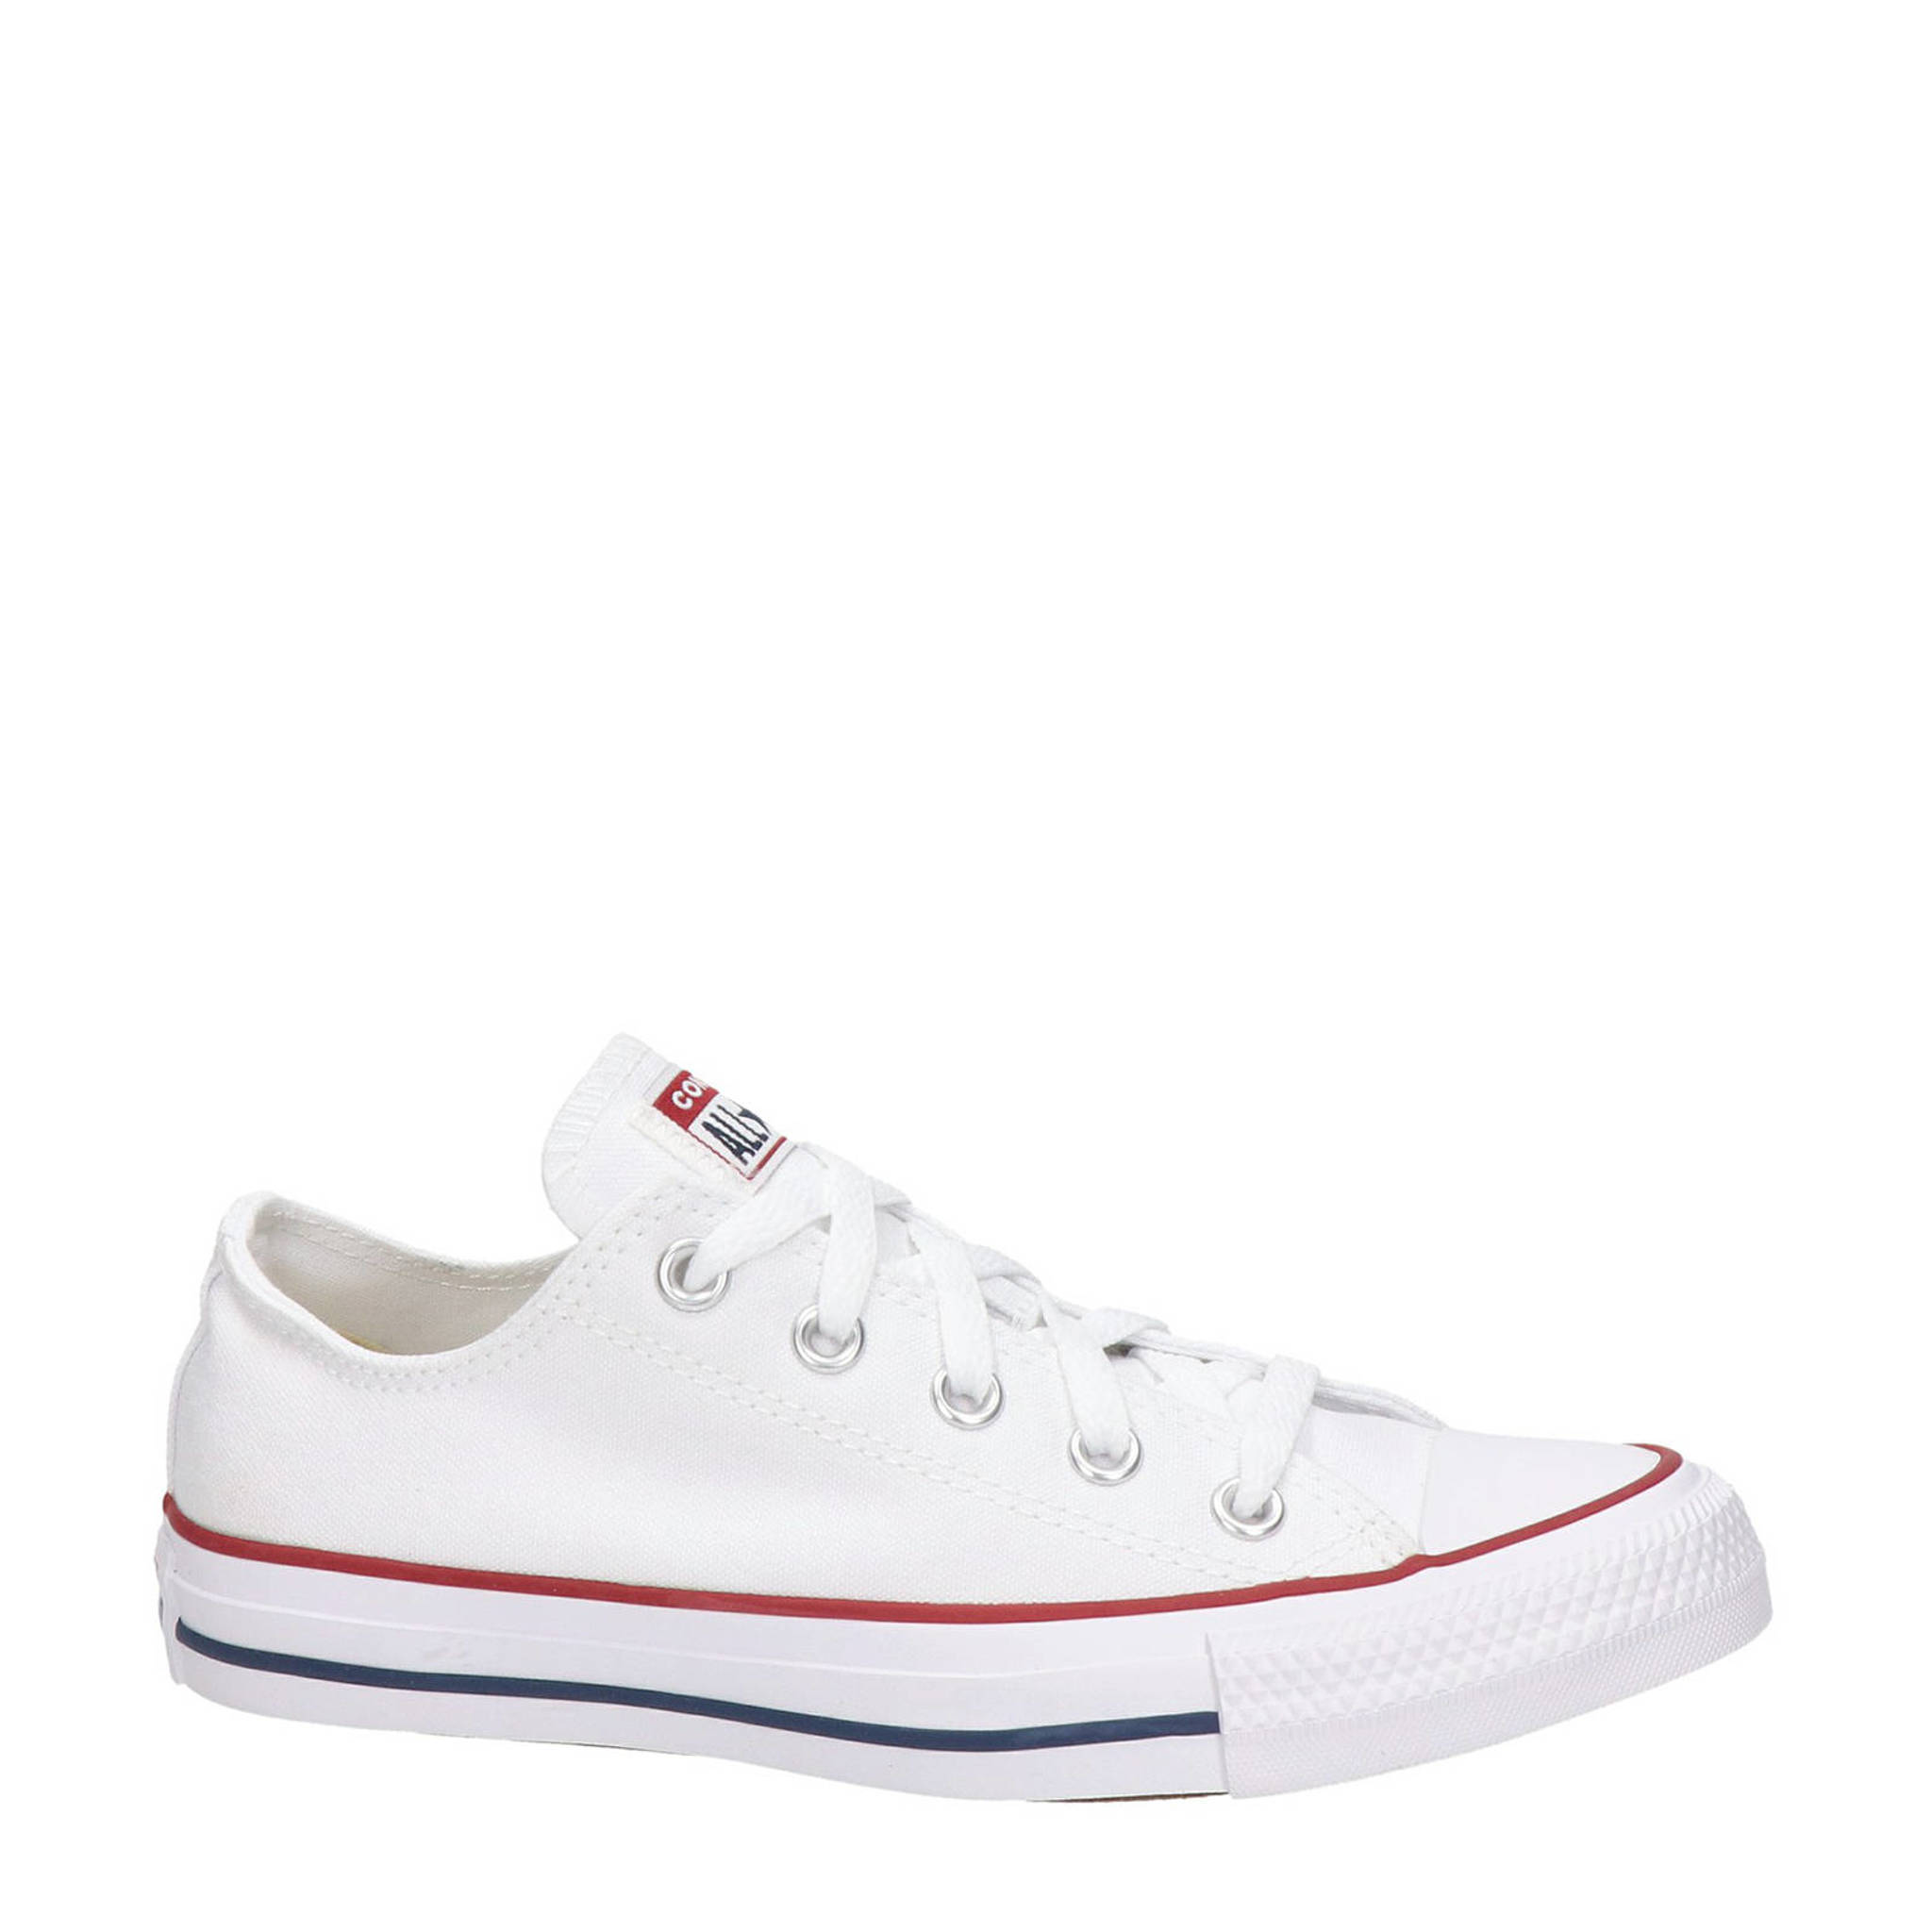 7880b828922 Converse All Star gympen | wehkamp